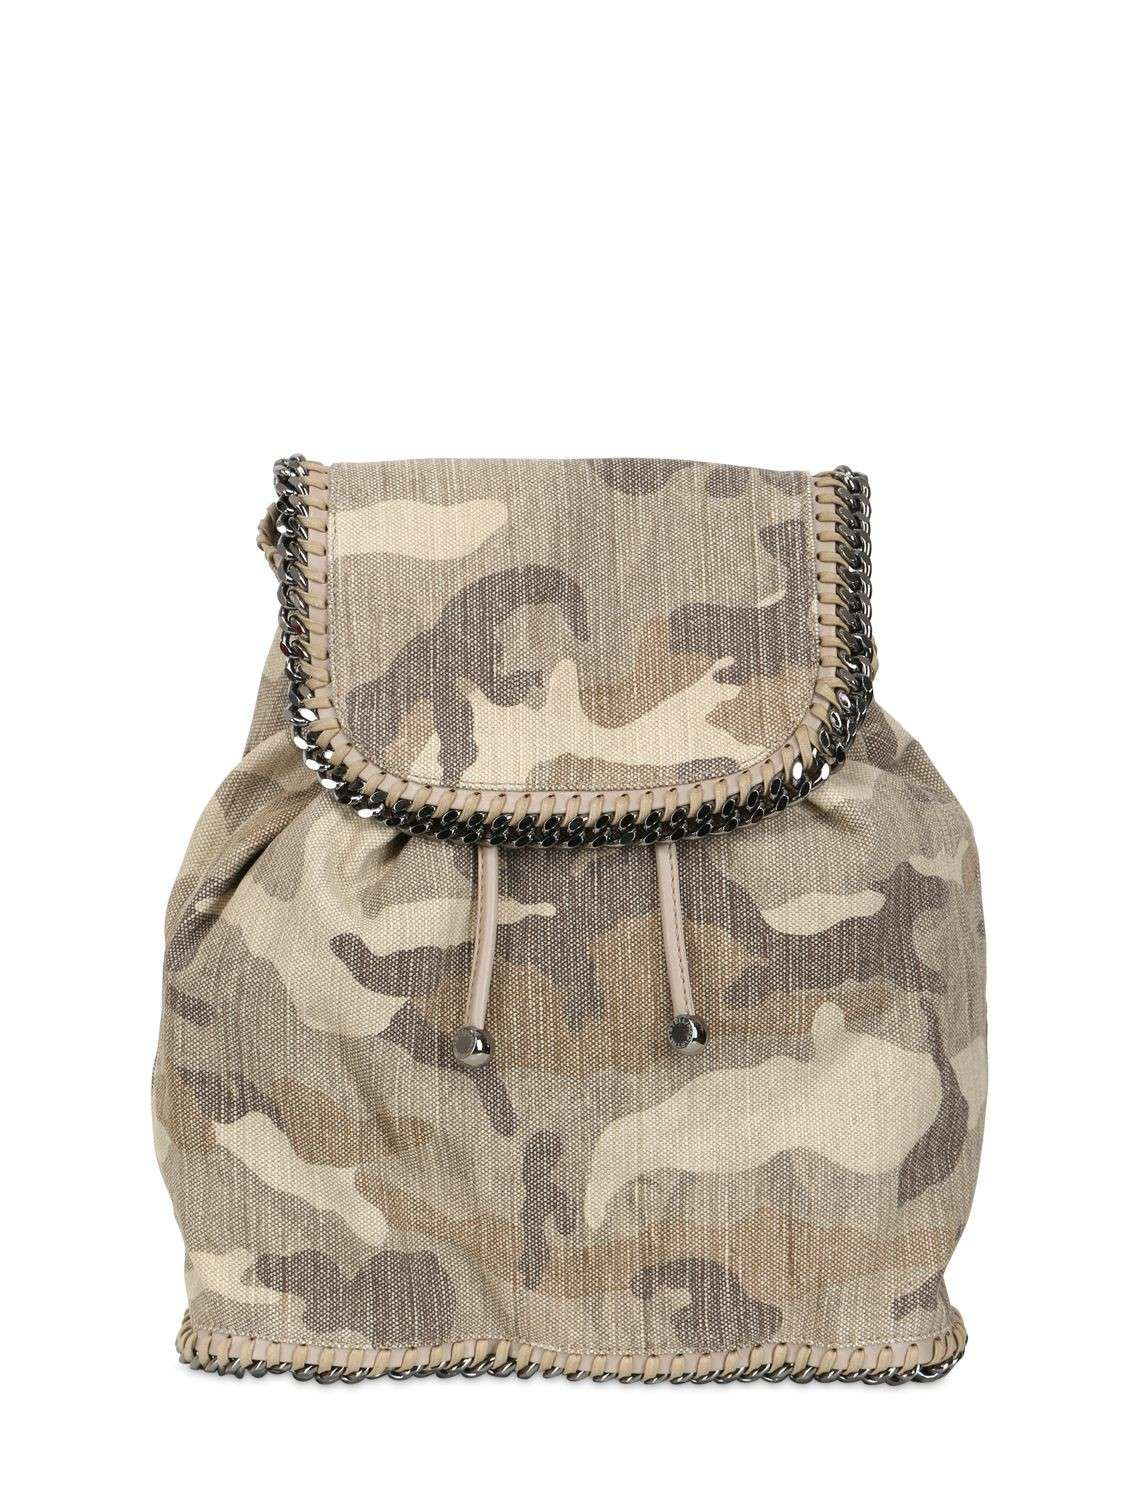 Zainetto camouflage Stella McCartney